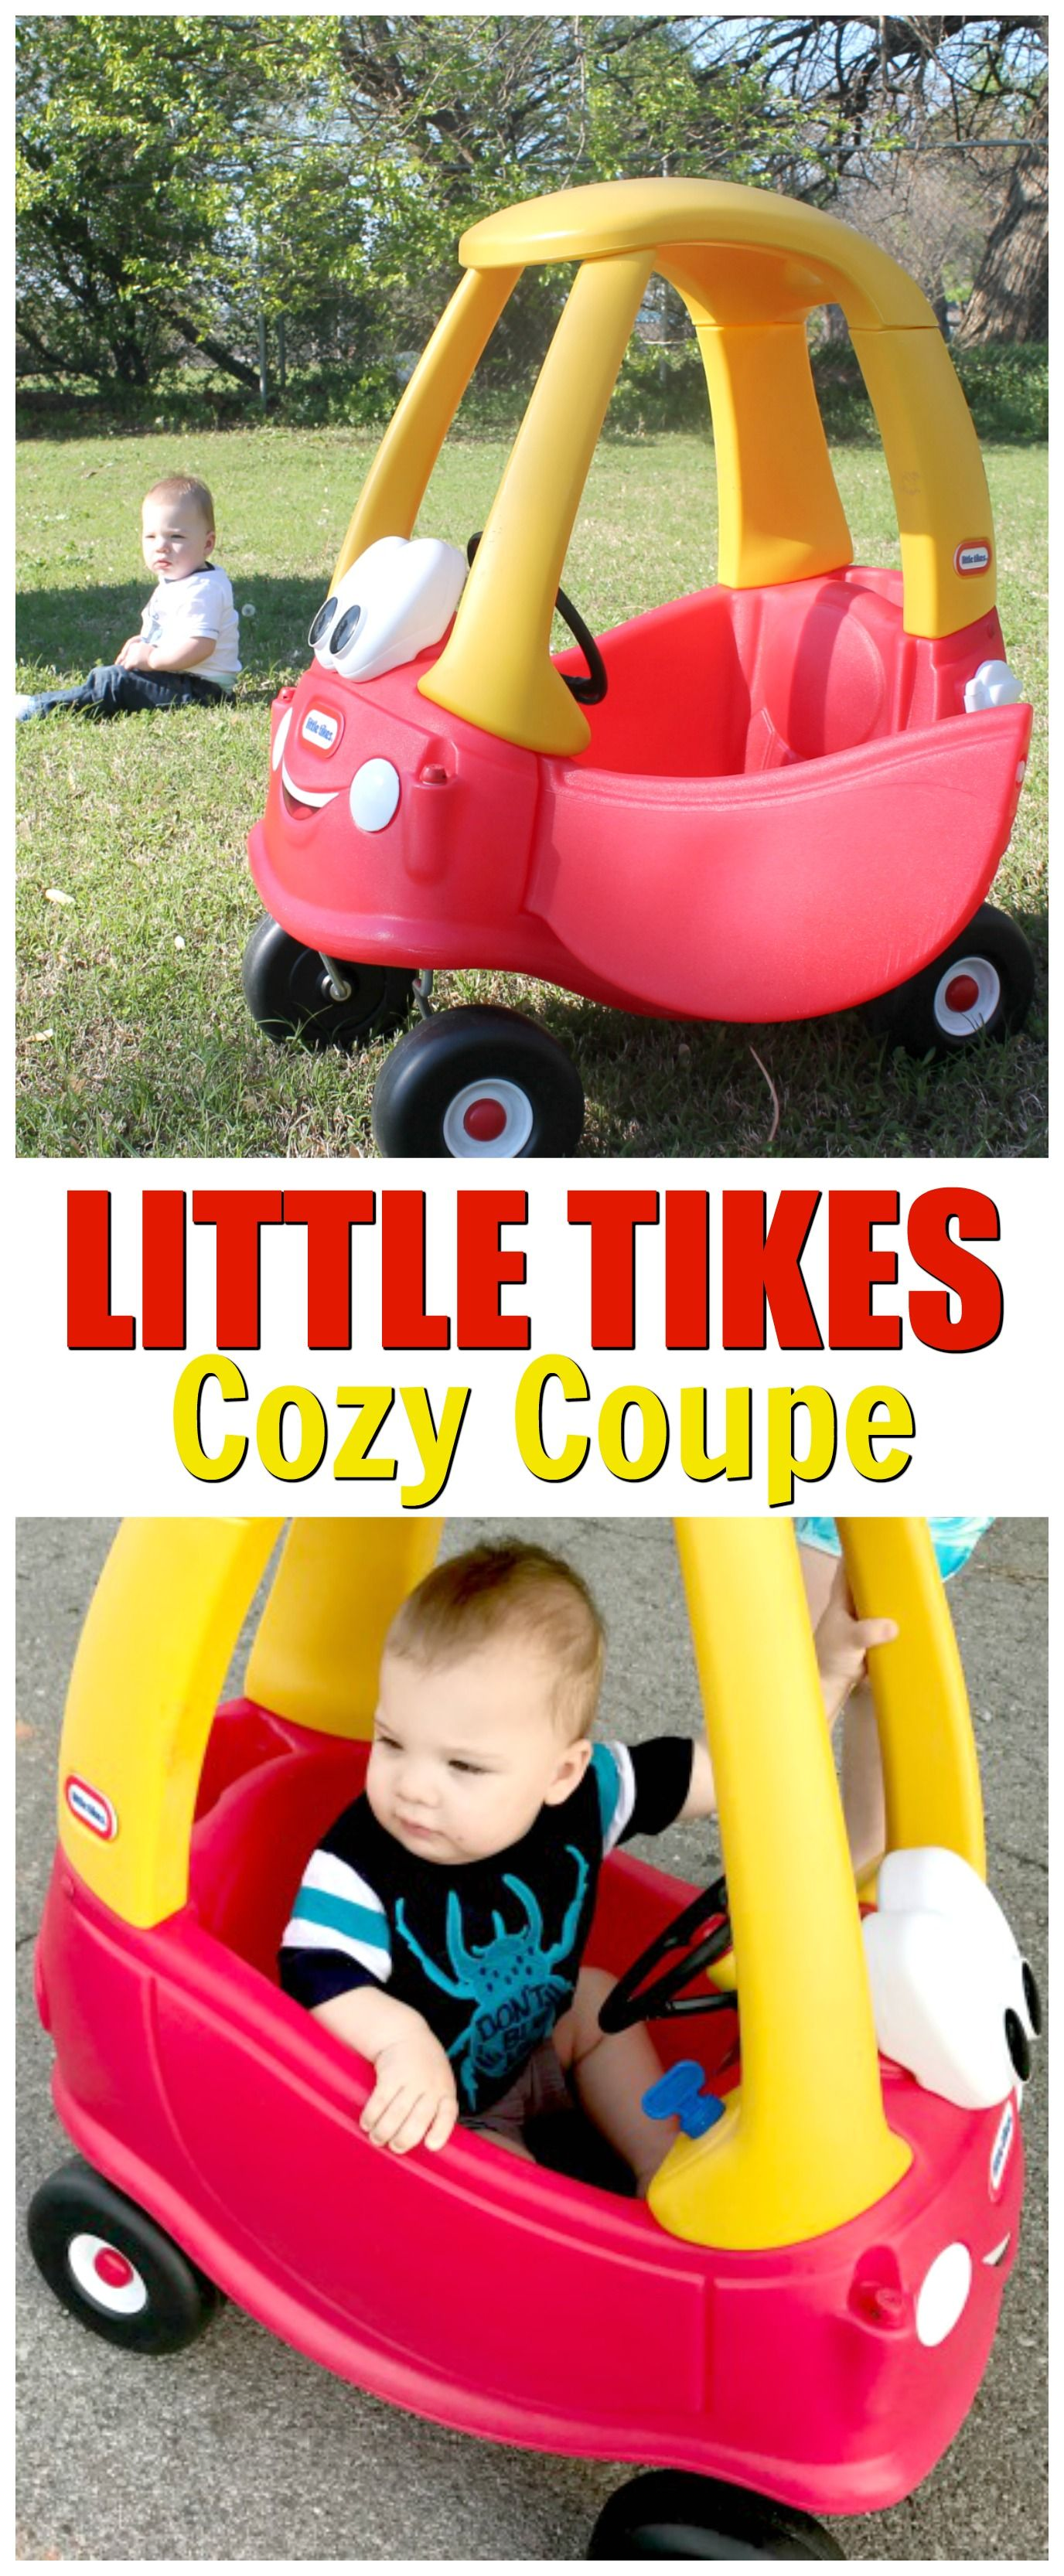 Little car toys  Little Tikes Cozy Coupe Outdoor Riding Car For Toddlers This Riding